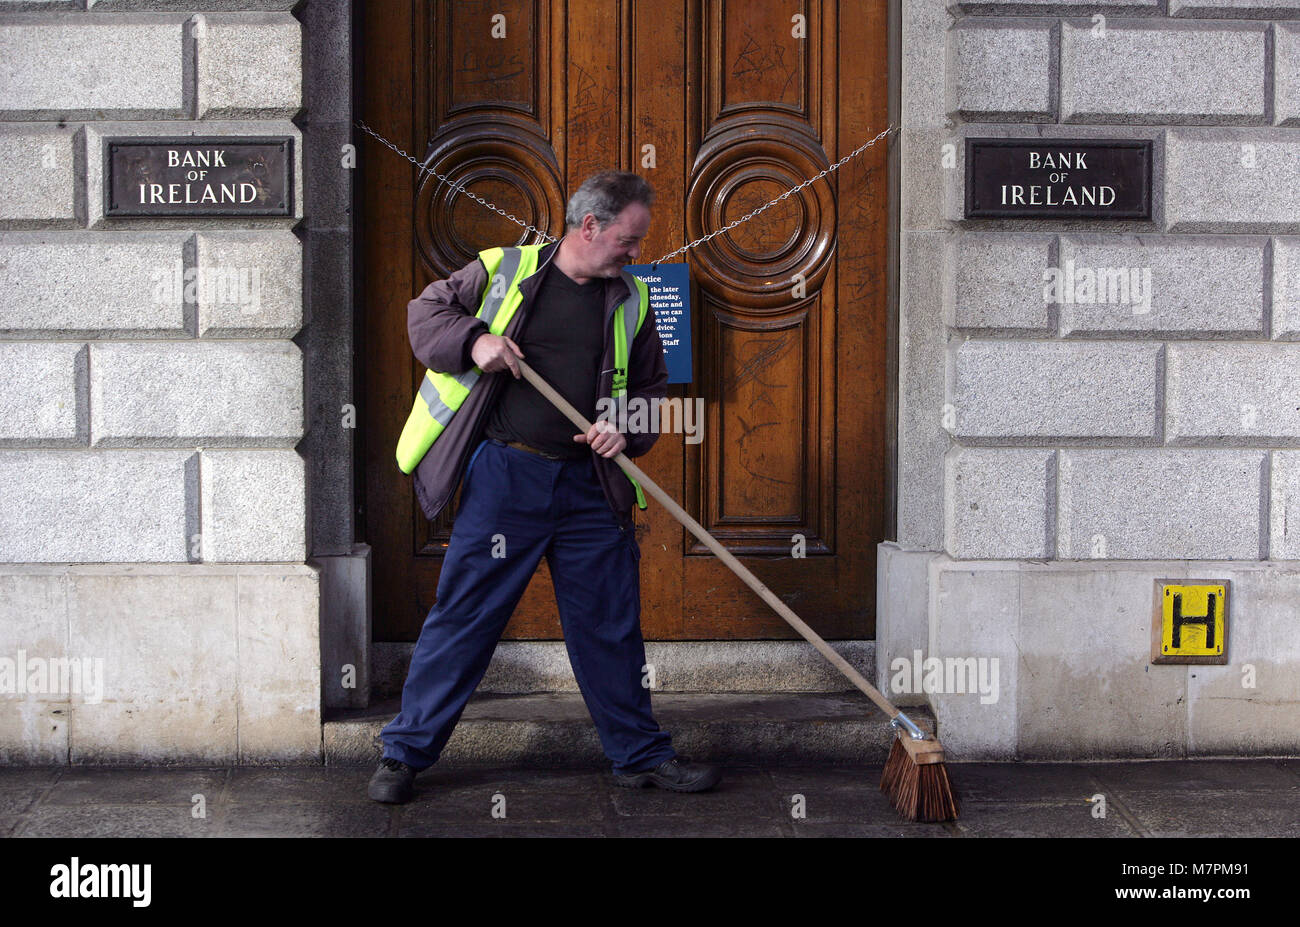 A workman cleans up outside the Bank Of Ireland Headquarters in Dublin, Ireland, 1 Oct, 2008. The Irish government - Stock Image